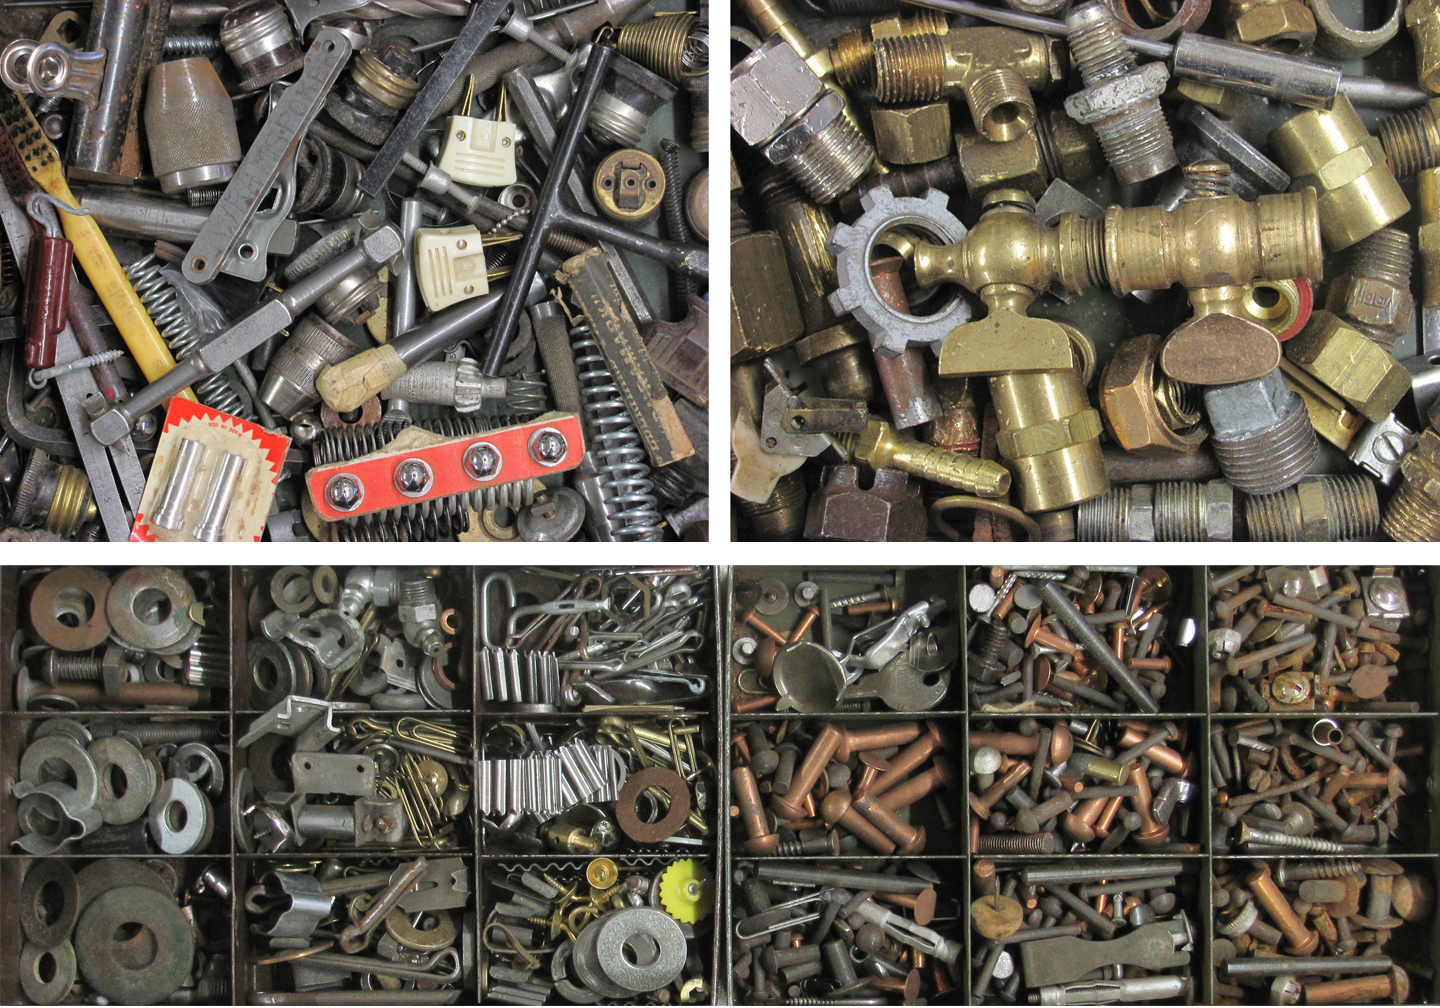 Contents of just four of 16 drawers.  Click image to enlarge.